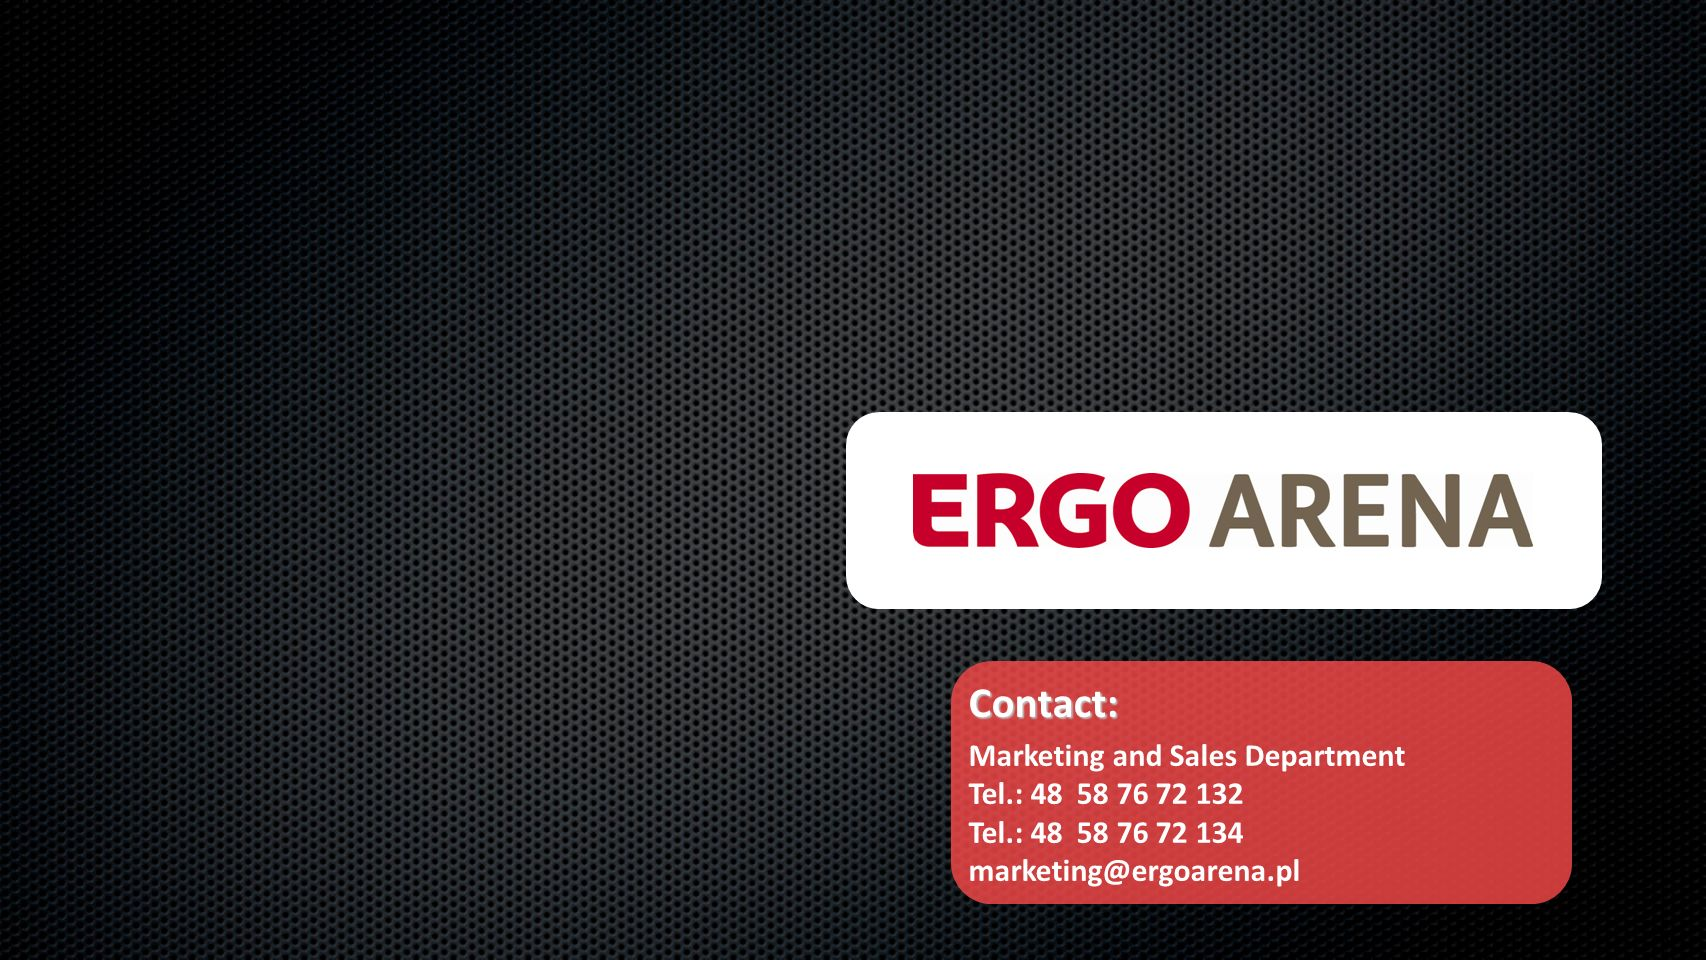 13 Contact: Marketing and Sales Department Tel.: 48 58 76 72 132 Tel.: 48 58 76 72 134 marketing@ergoarena.pl